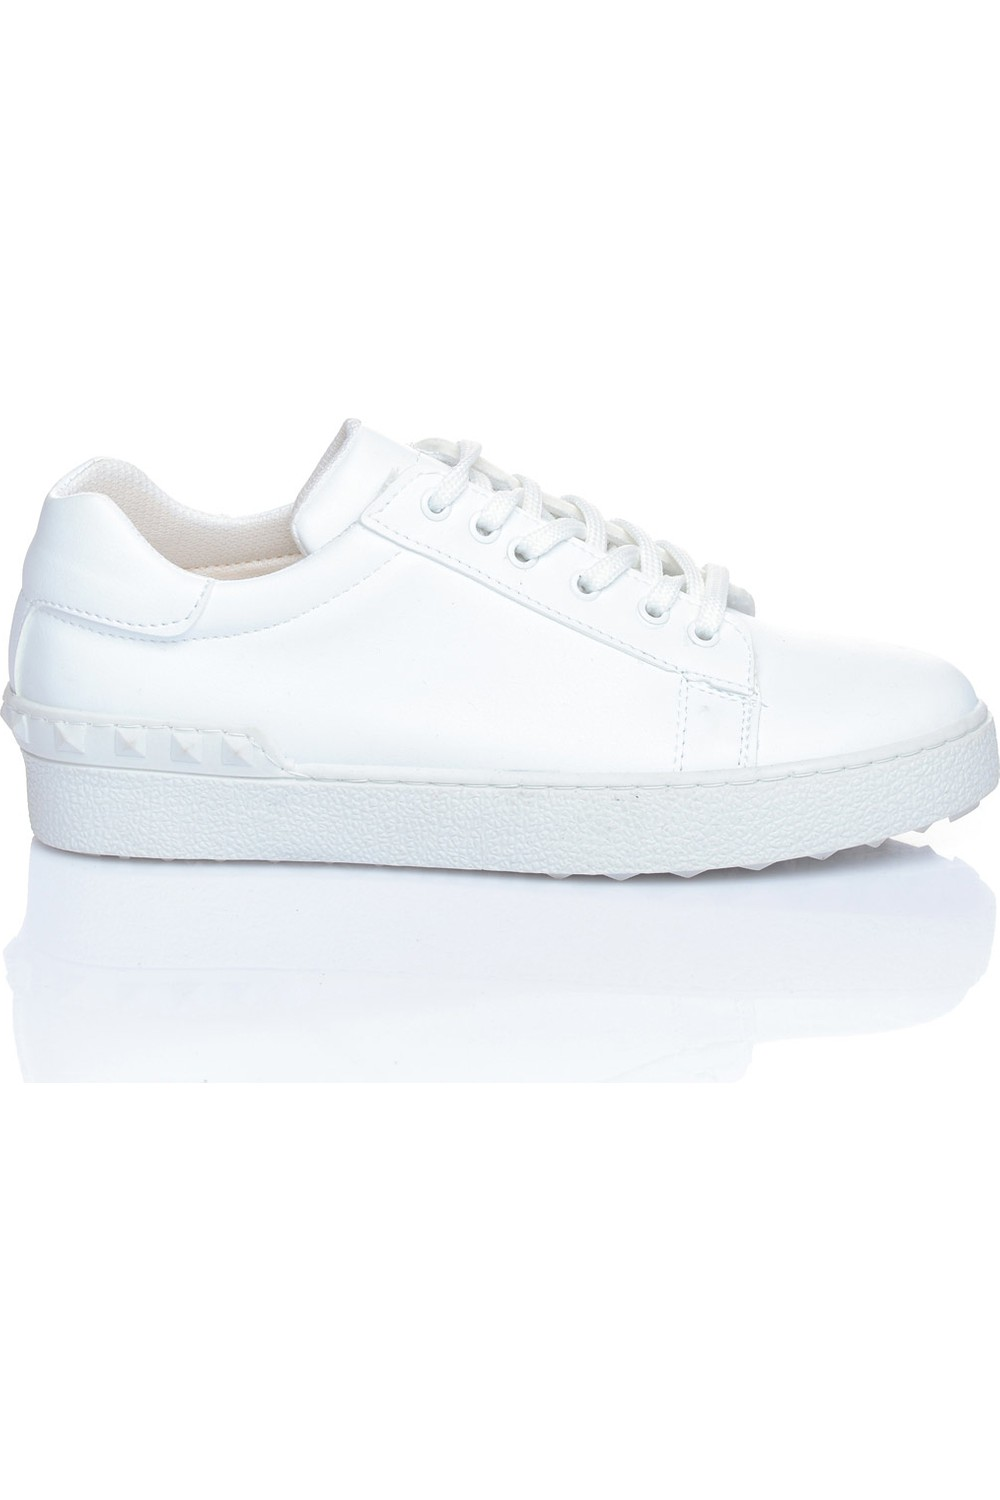 Shoes Time Sports Shoes 18Y 224